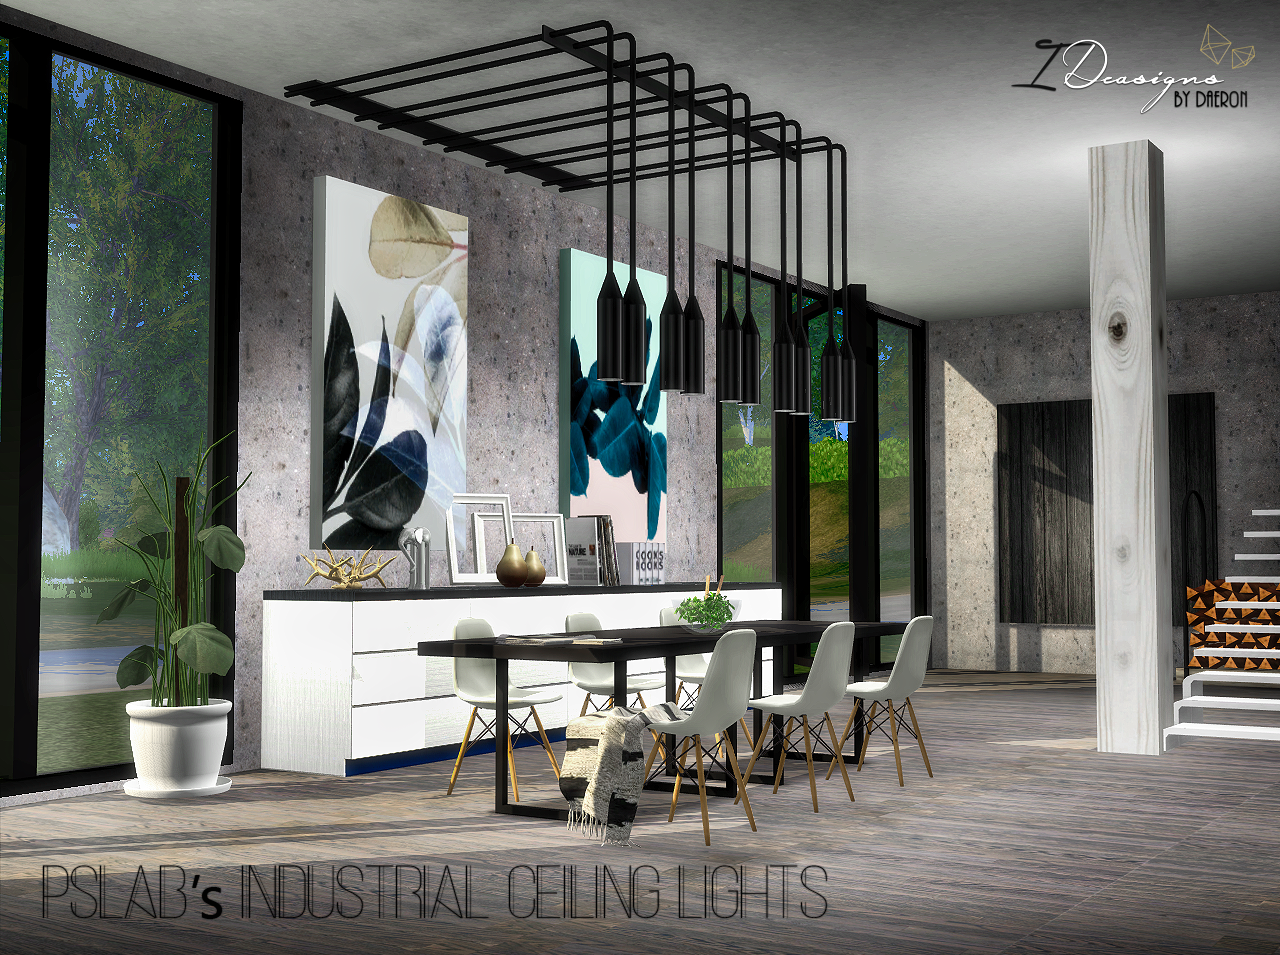 Spetses quot bedroom quot set onyx sims - Pslab S Industrial Ceiling Lights New Mesh Sims 4 Designs